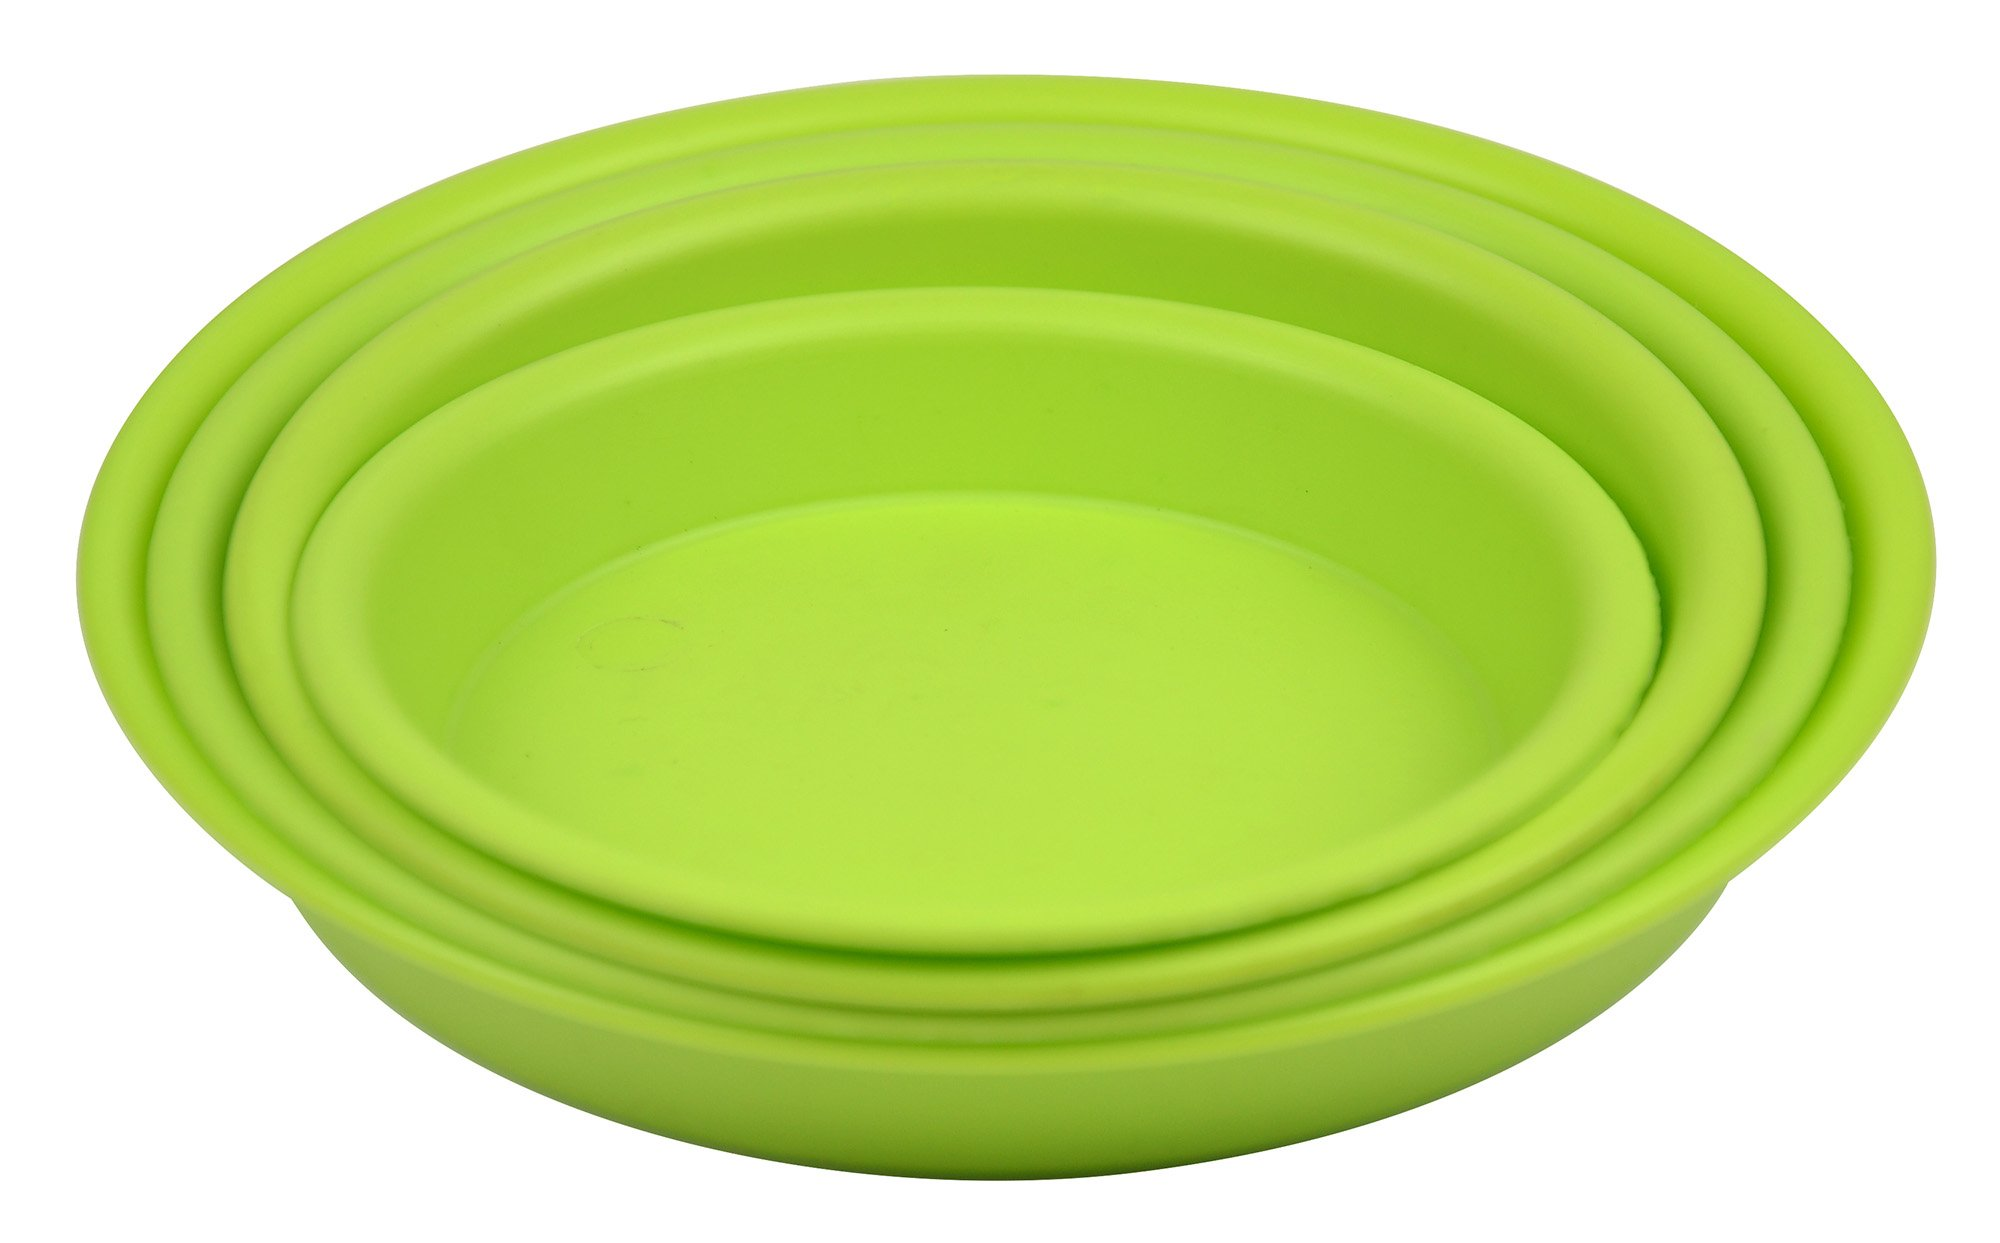 8.5'' Round Plant Saucer Planter Tray Pat Pallet for Flowerpot,Green,900 Count by Zhanwang